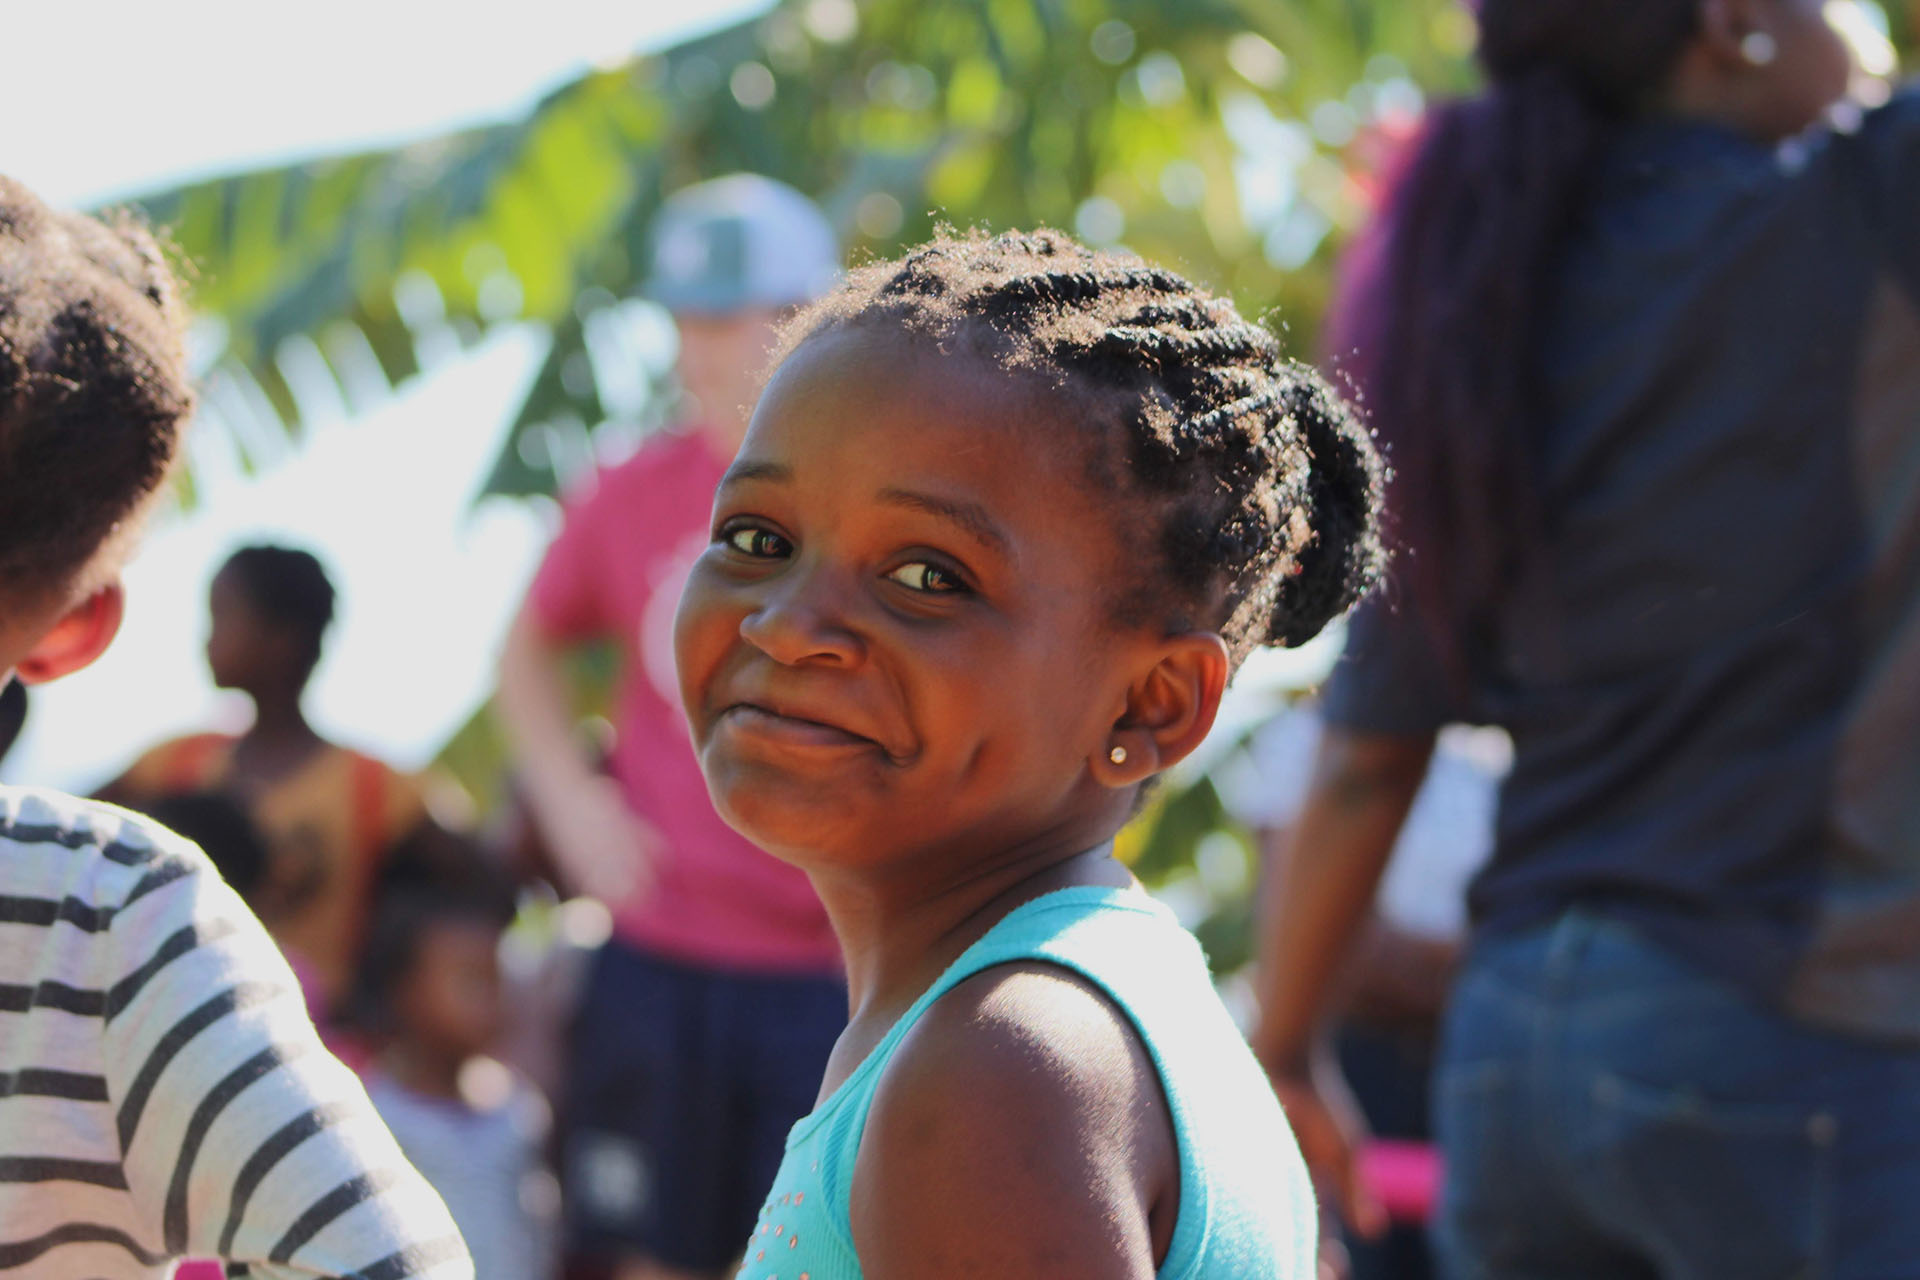 annual reports about-us-hillaids-Hillcrest-aids-centre-trust-girl